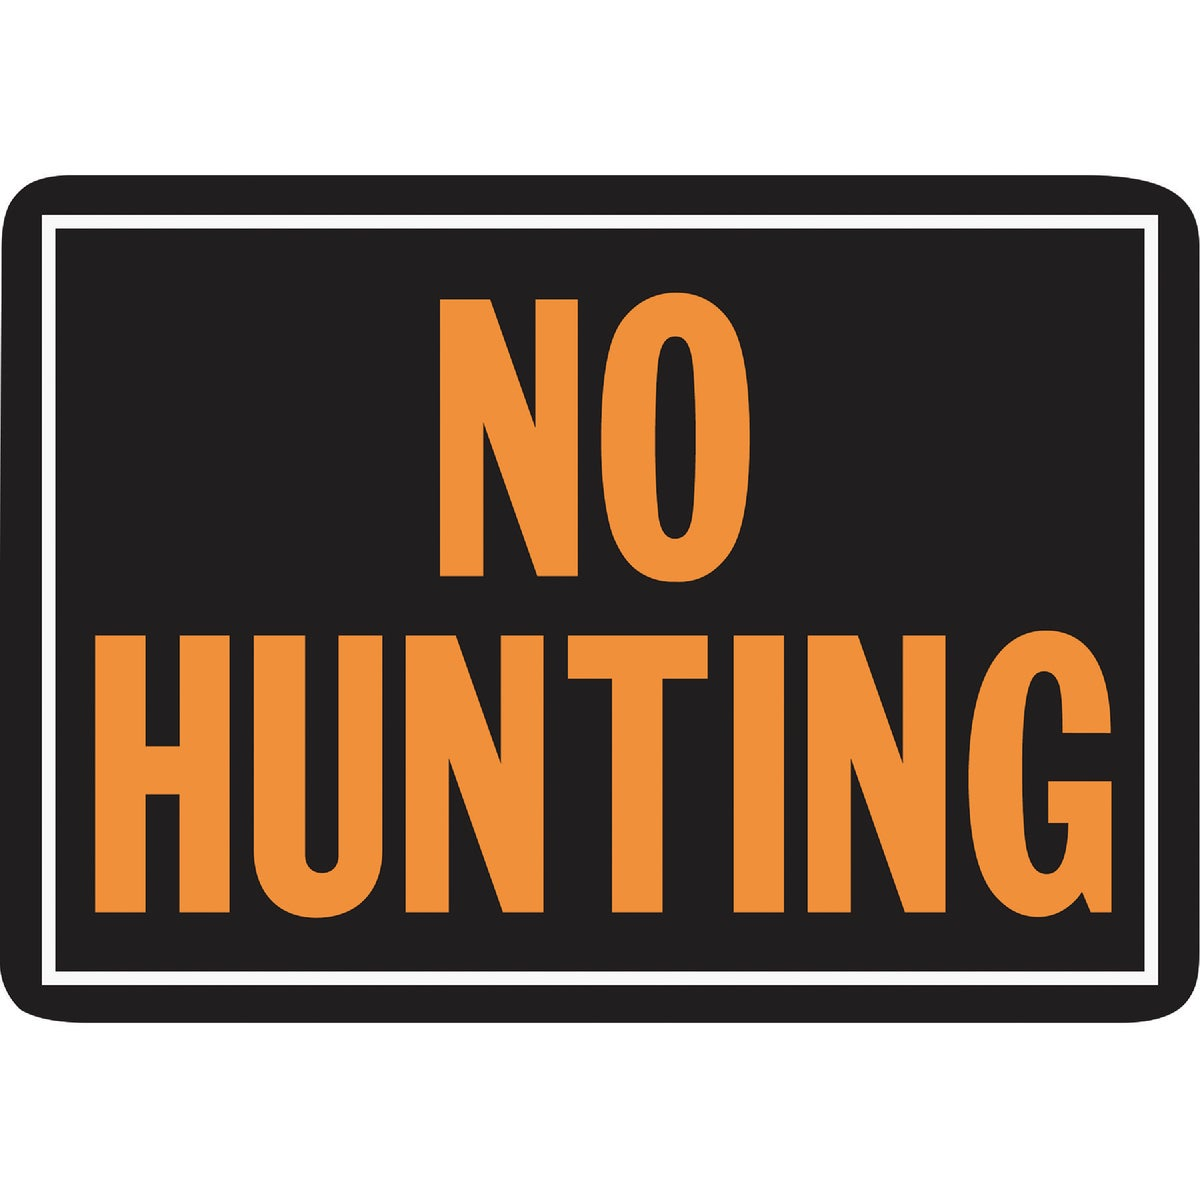 10X14 NO HUNTING SIGN - 806 by Hy Ko Prods Co